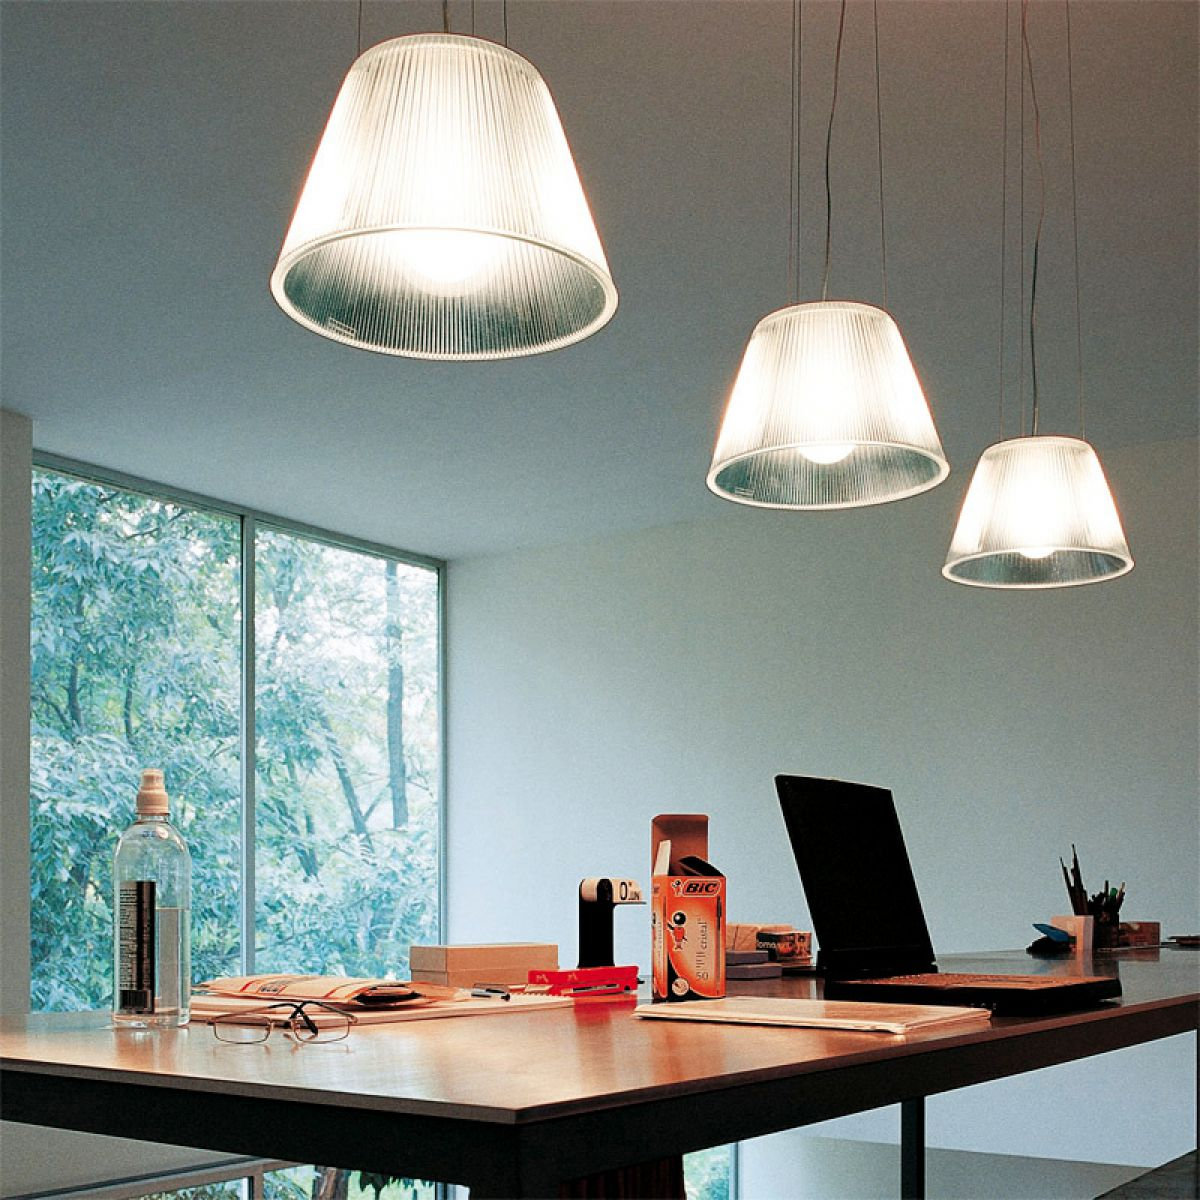 Dining room with simple lamps over the wooden table